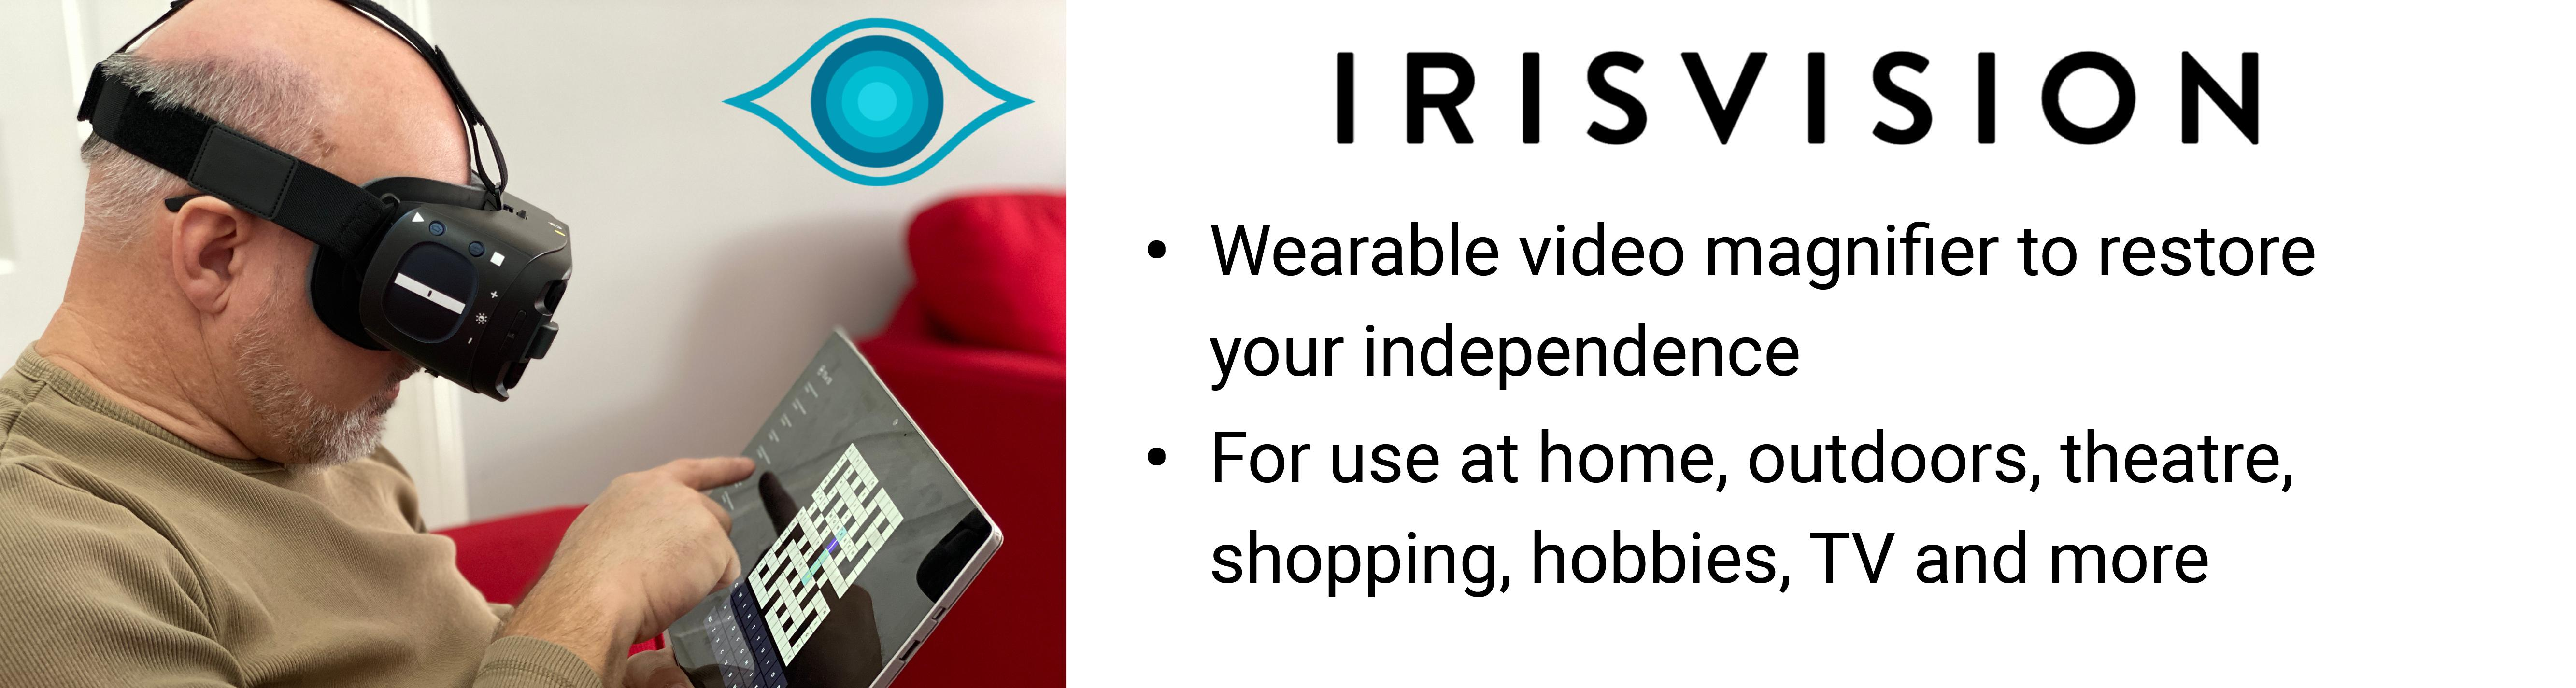 IrisVision Live. Wearable video magnifier to restore your independence. Use it to see your loved ones faces again.